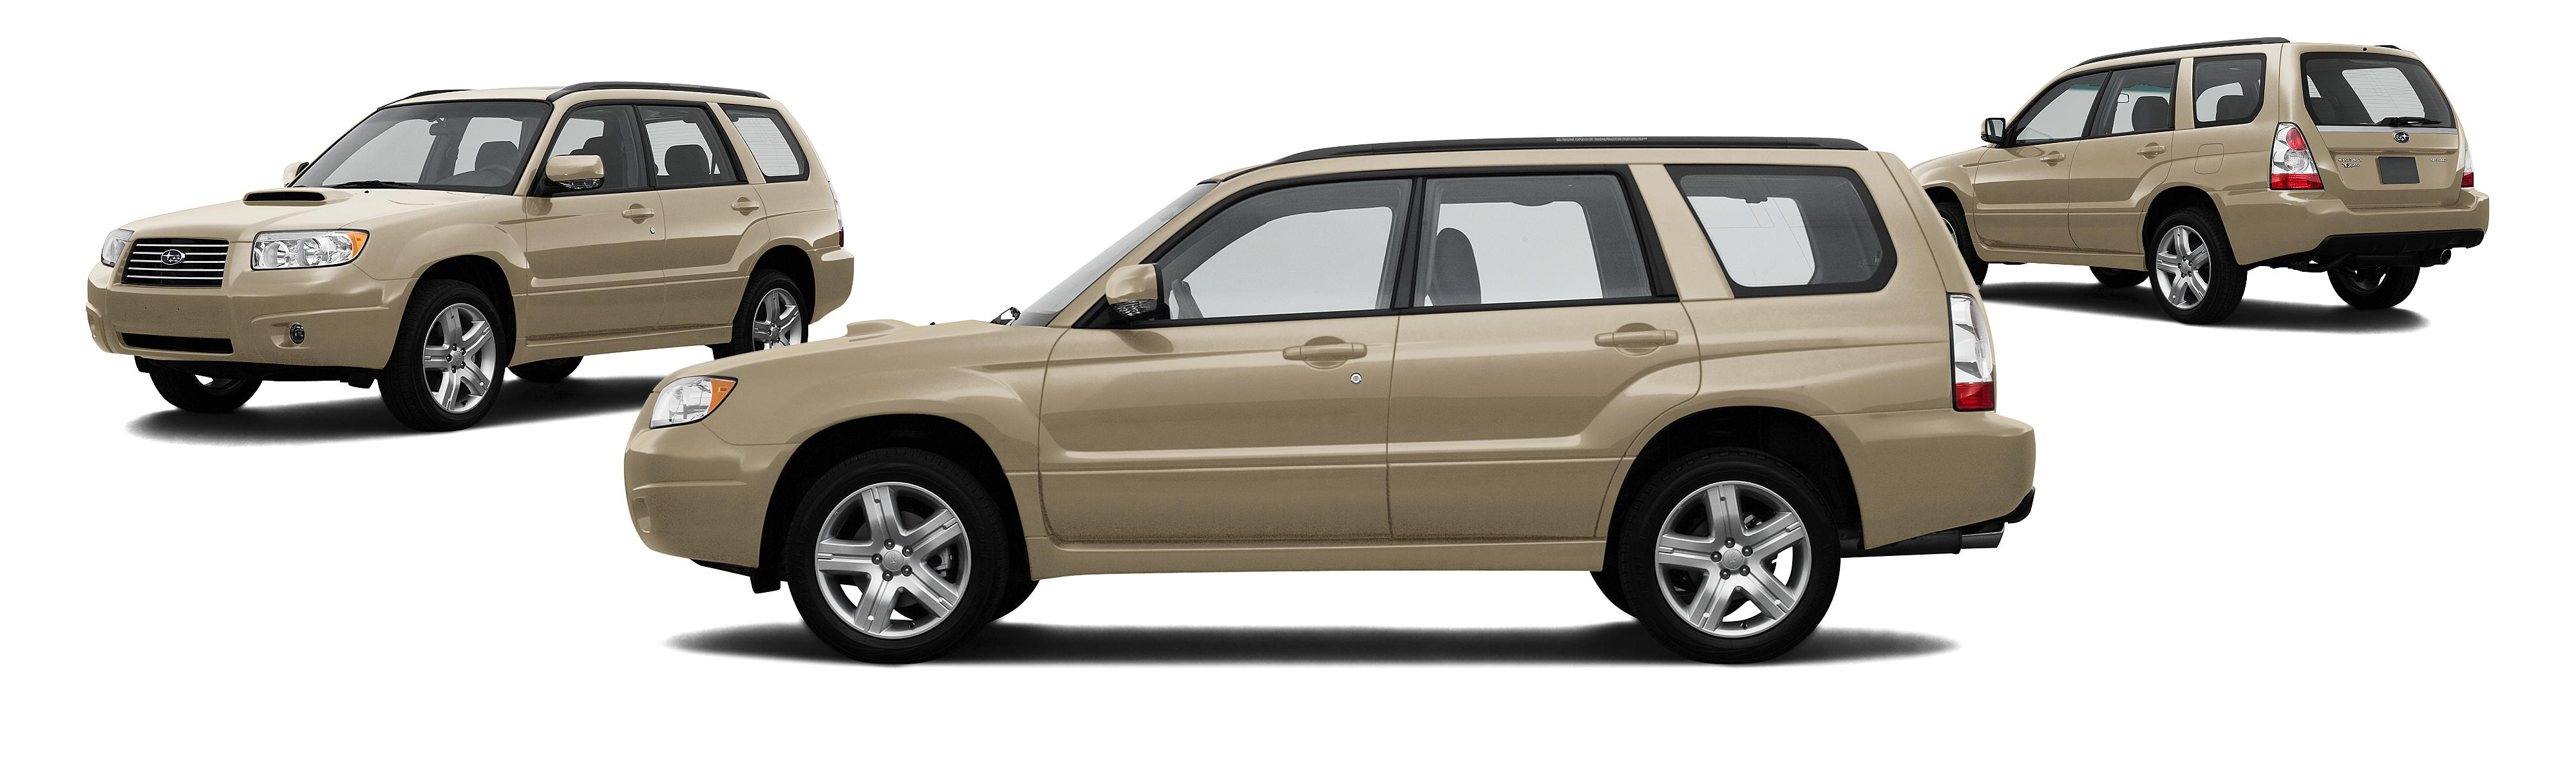 2008 subaru forester awd 25 xt limited 4dr wagon 5m research 2008 subaru forester awd 25 xt limited 4dr wagon 5m research groovecar vanachro Images